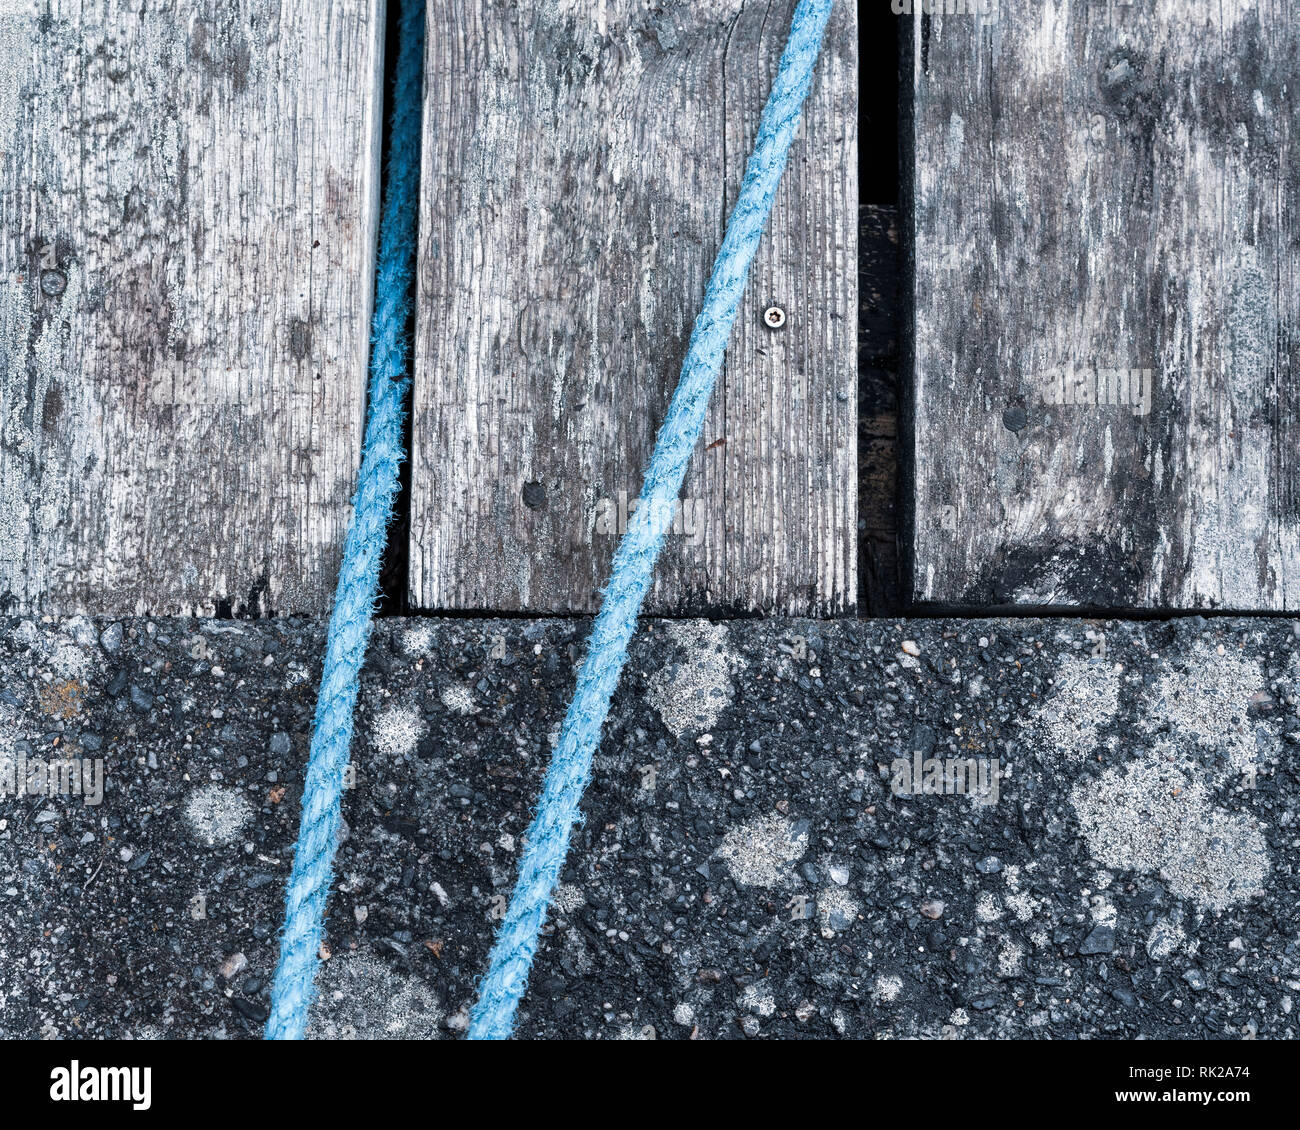 Weathered wooden planks and concrete with blue rope, full frame, close up - Stock Image